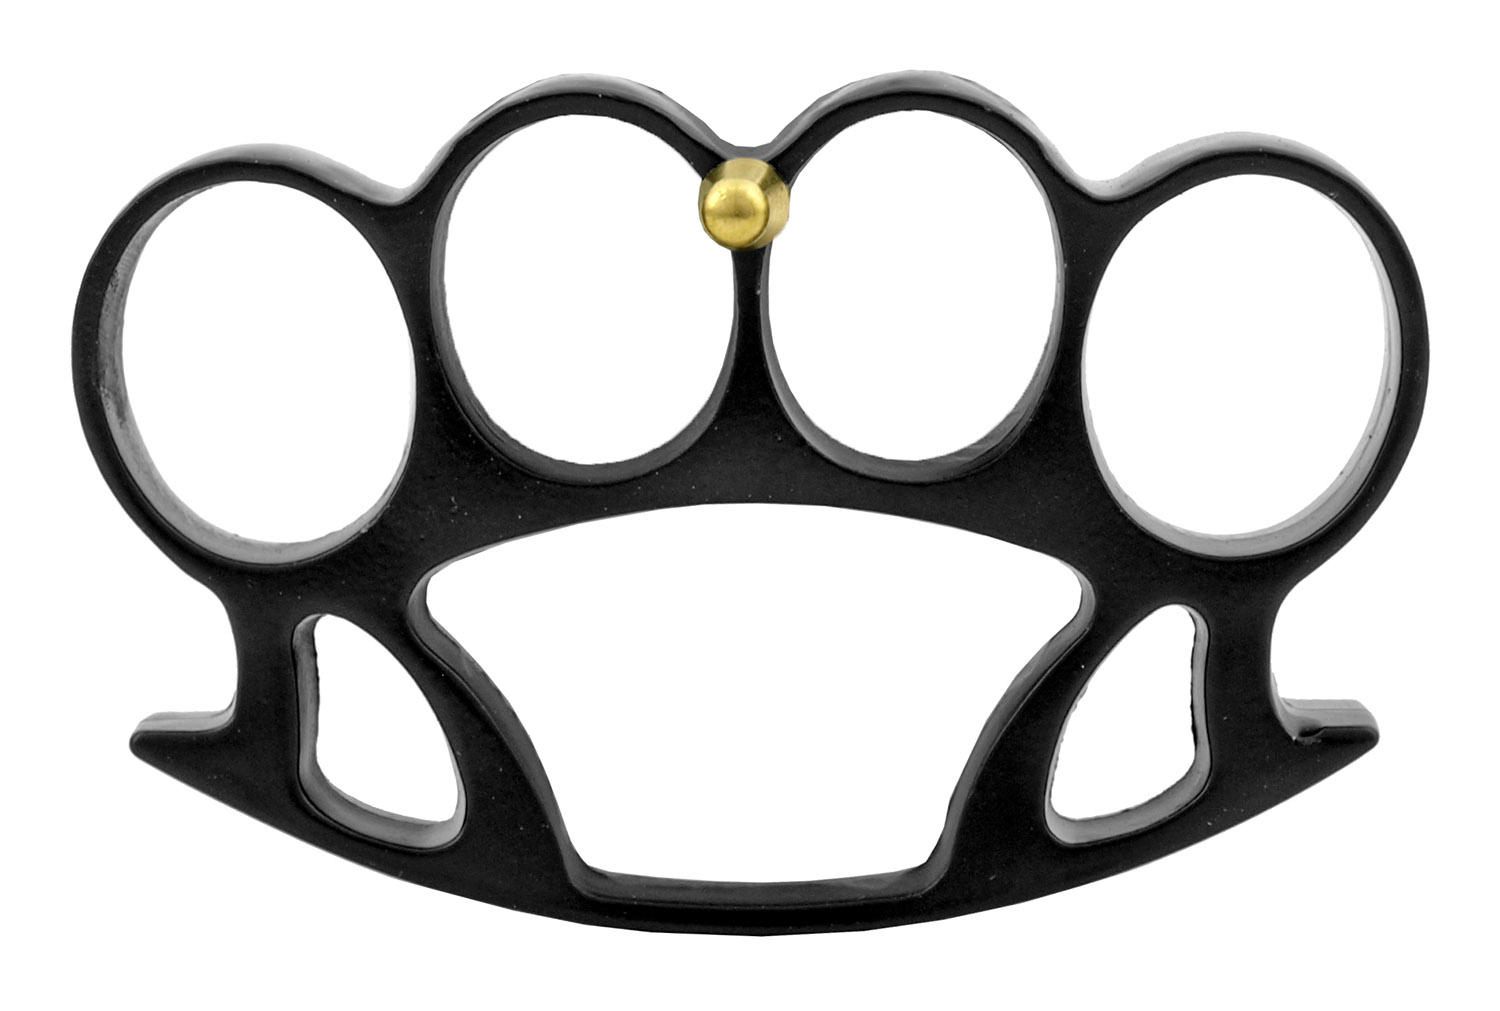 Brass Knuckle Duster Styled Belt Buckle with Prong Attachment - Black